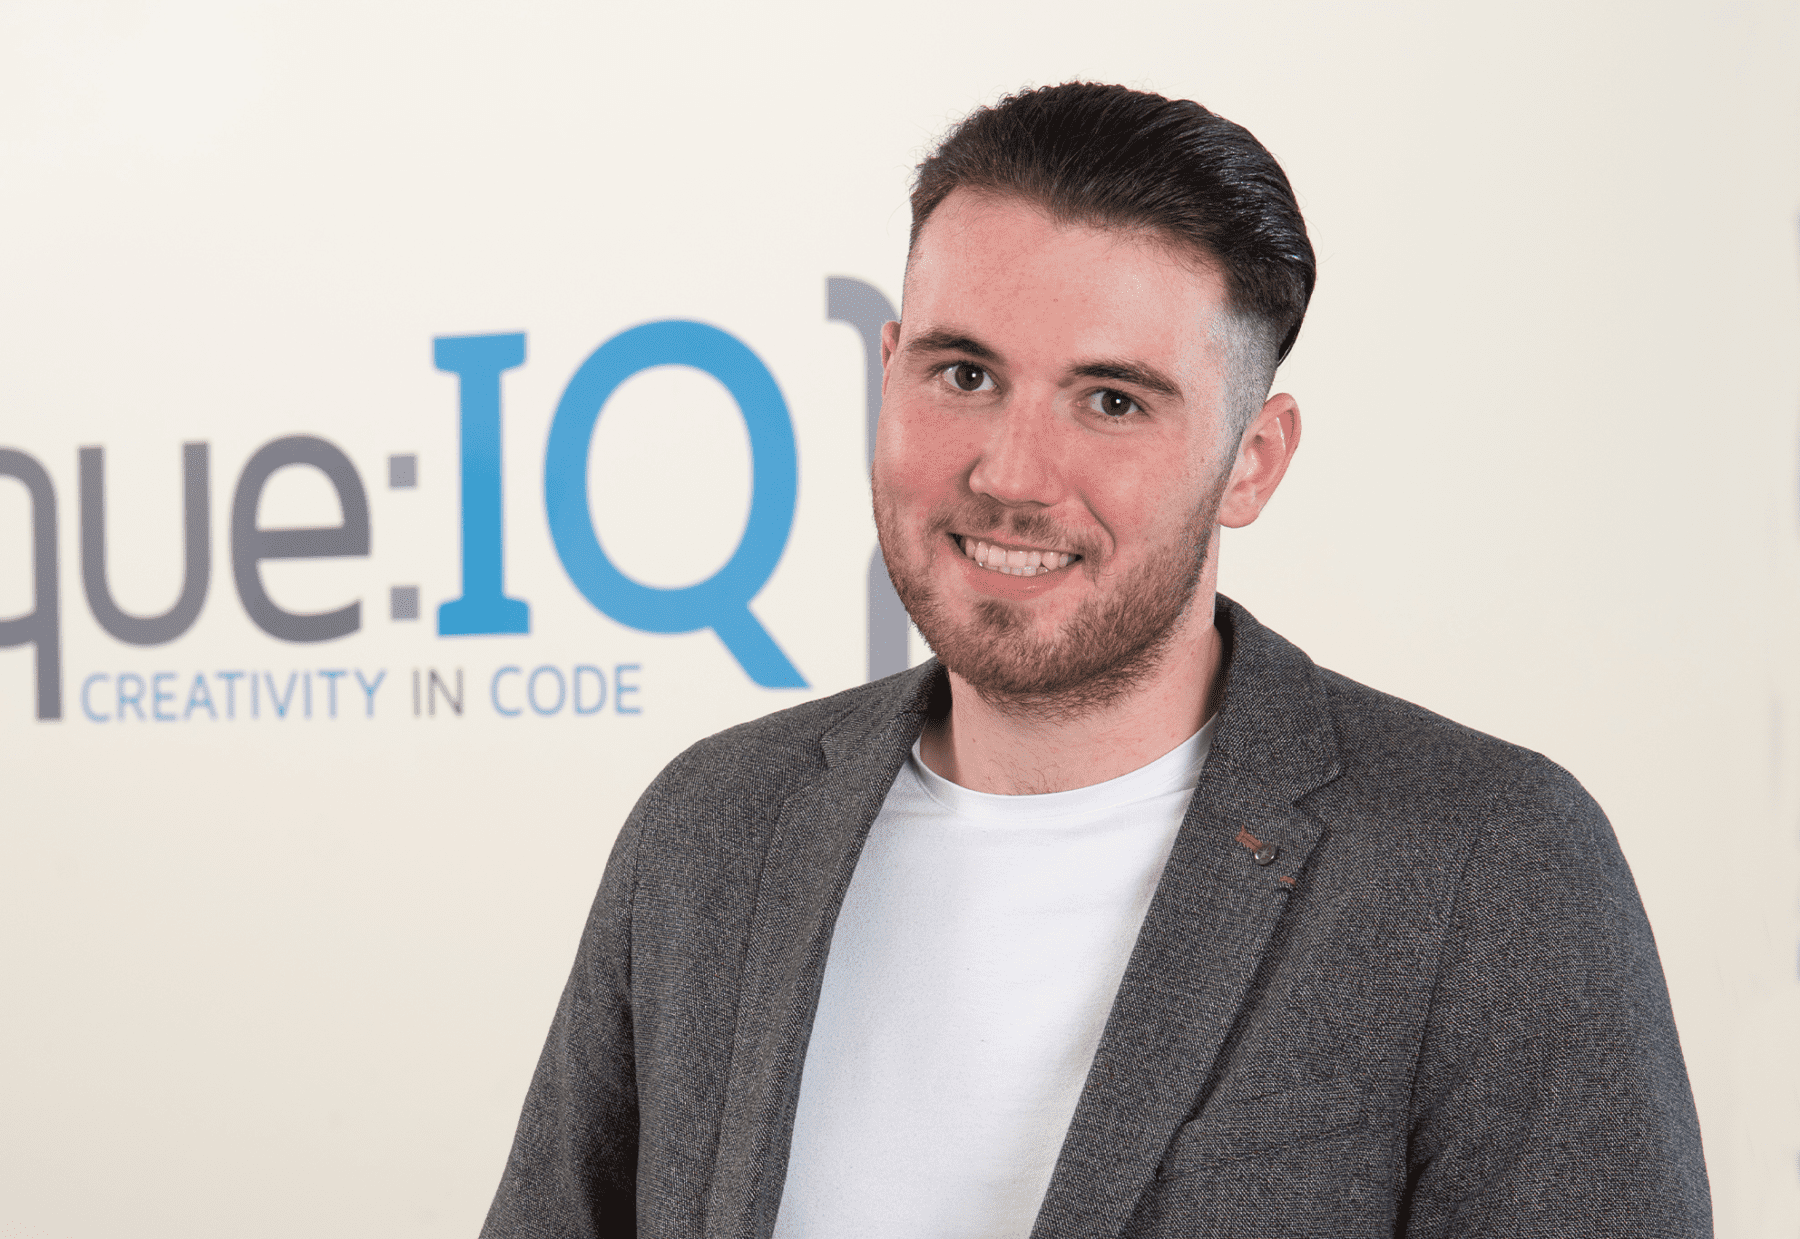 Scott Drinkwater, Product Manager - IQtimecard at Unique IQ